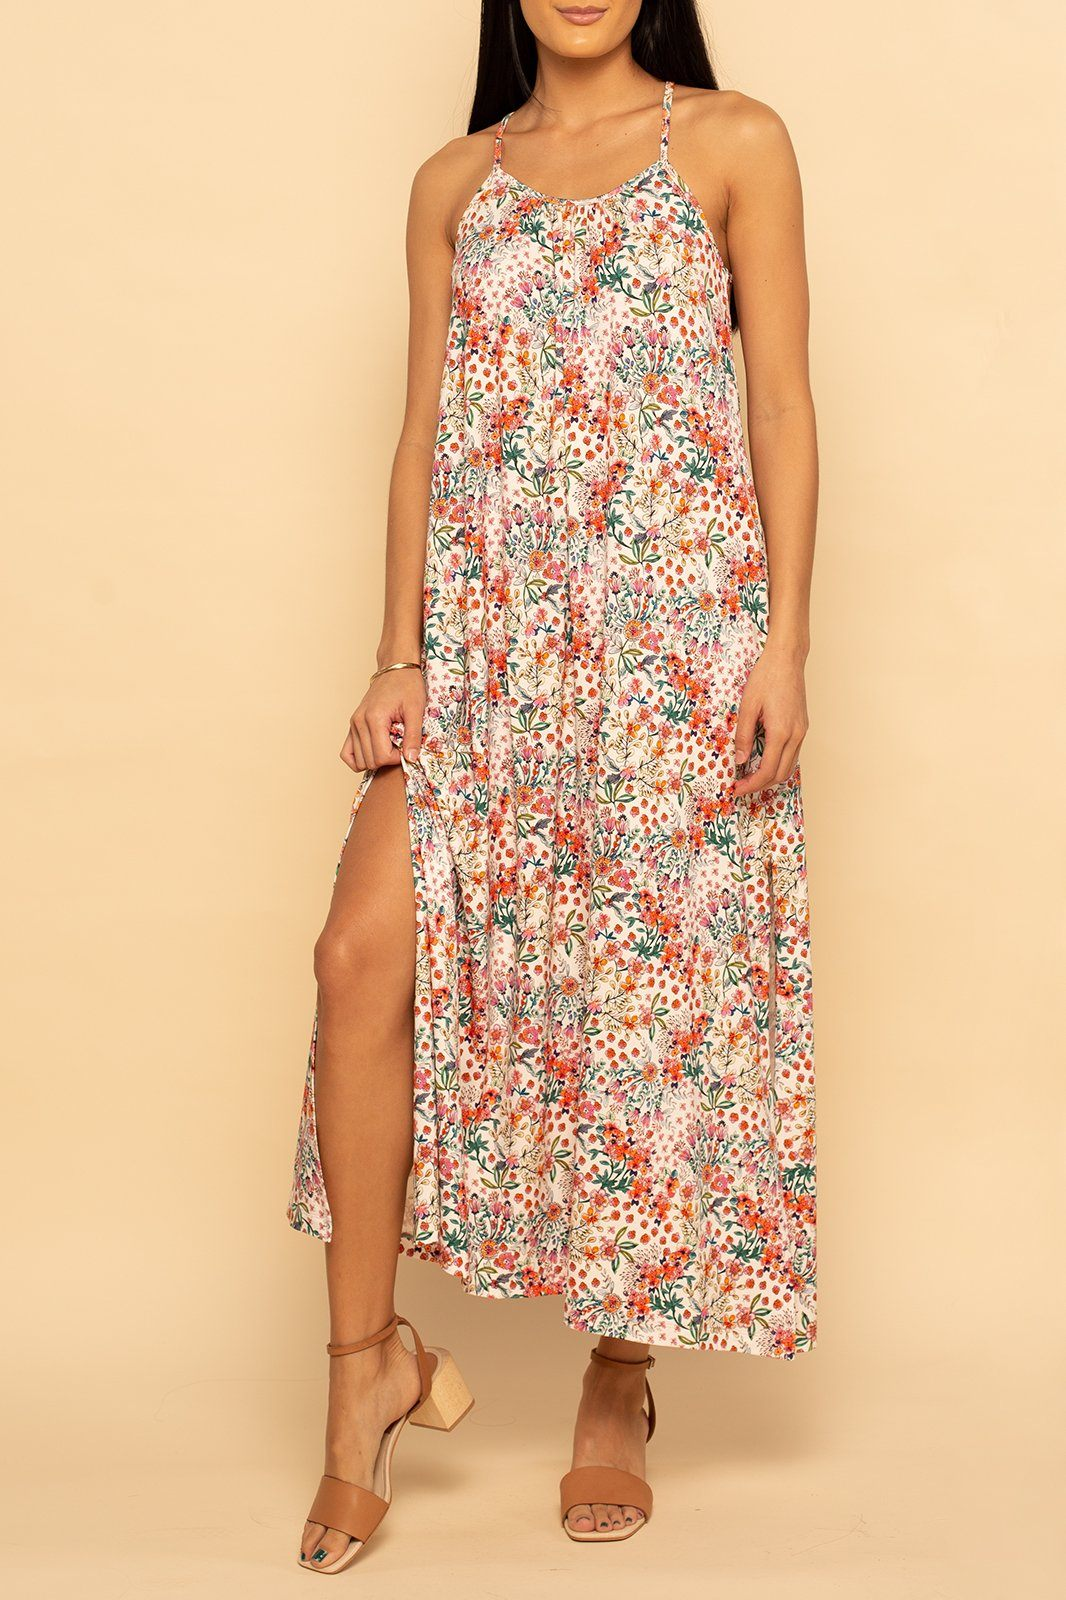 Marbella Maxi - Ditsy Colorful Floral - Shore